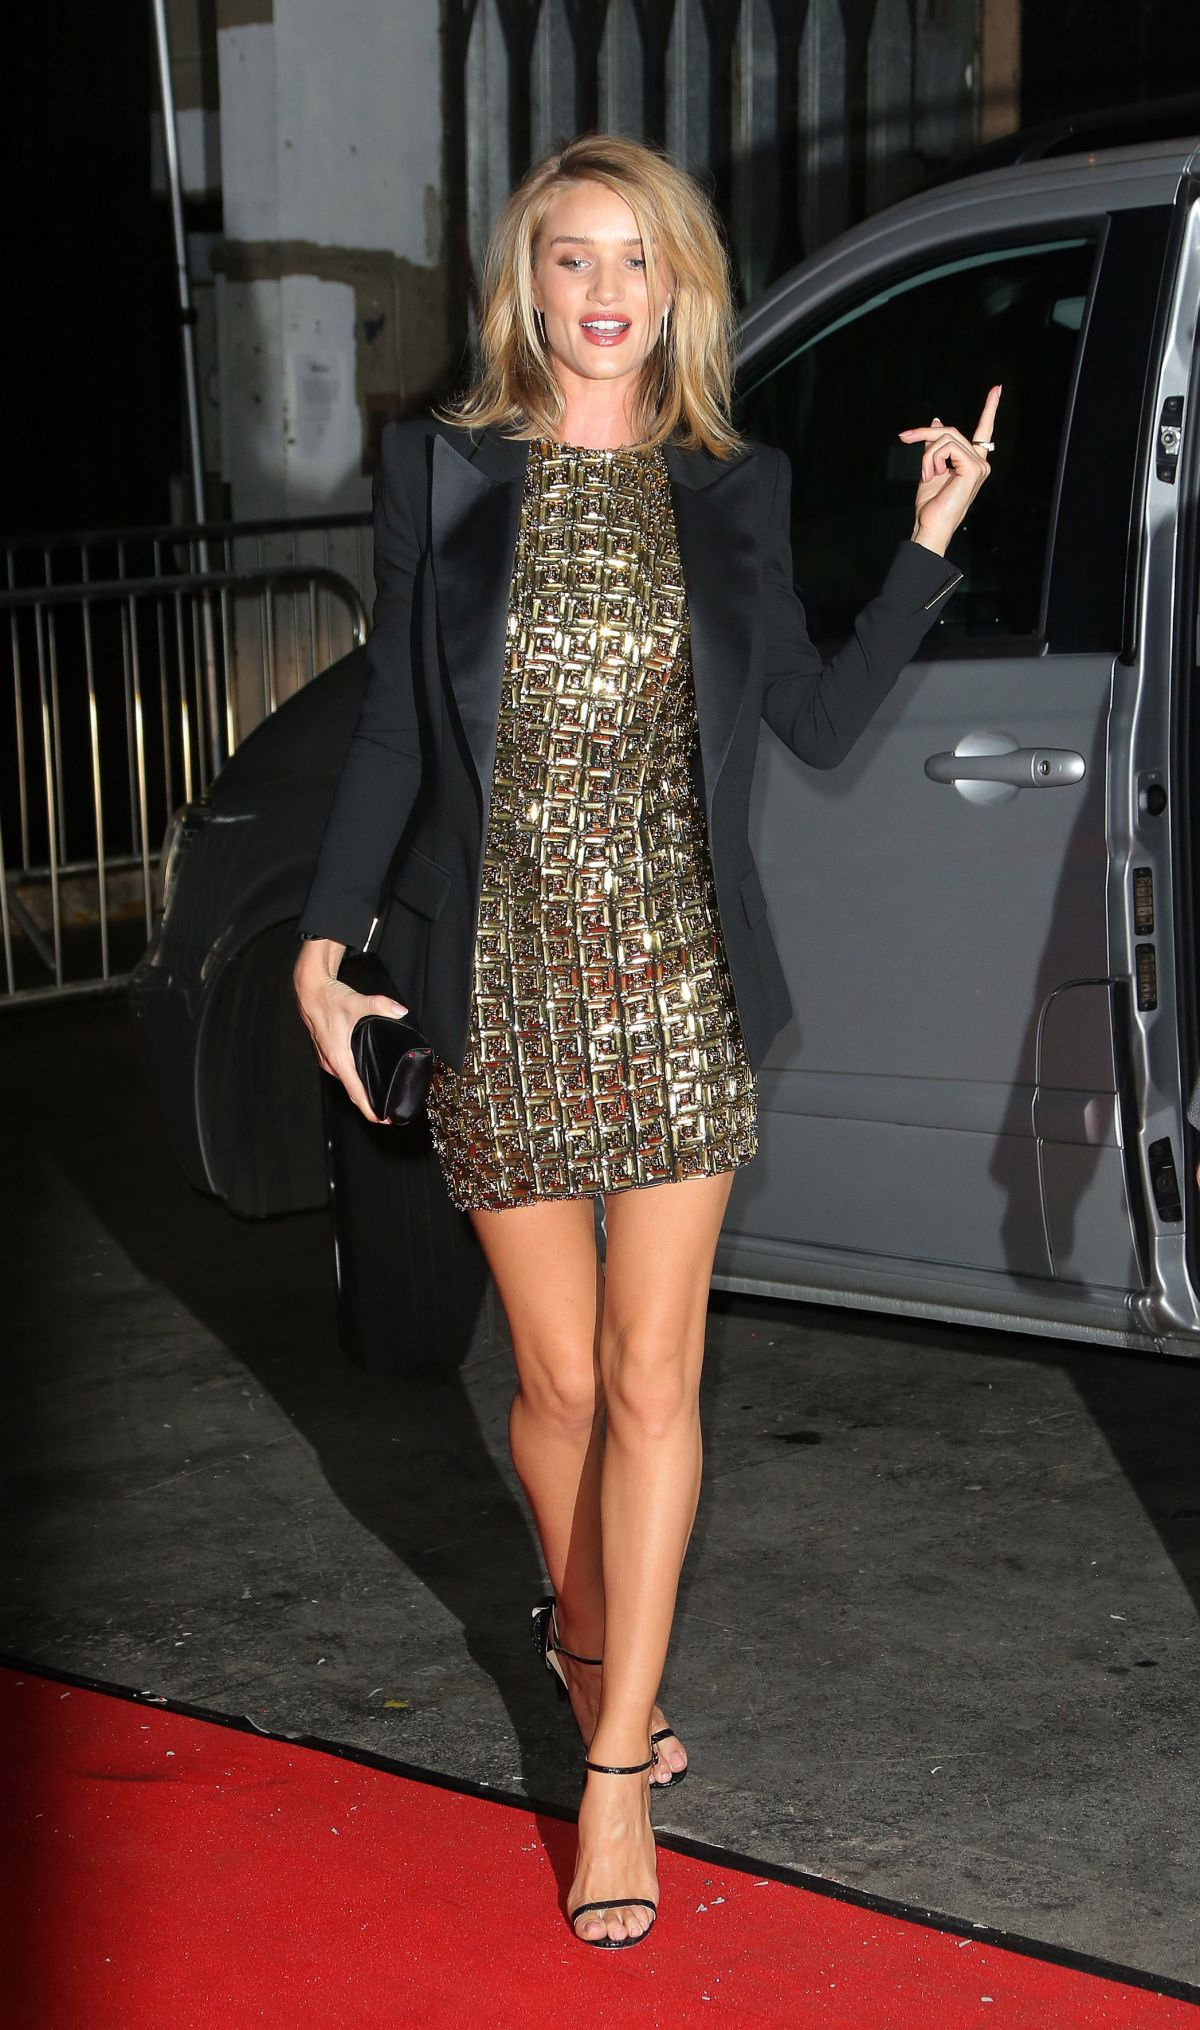 ROSIE HUNTINGTON-WHITELEY at Universal Music Brits Party in London ...